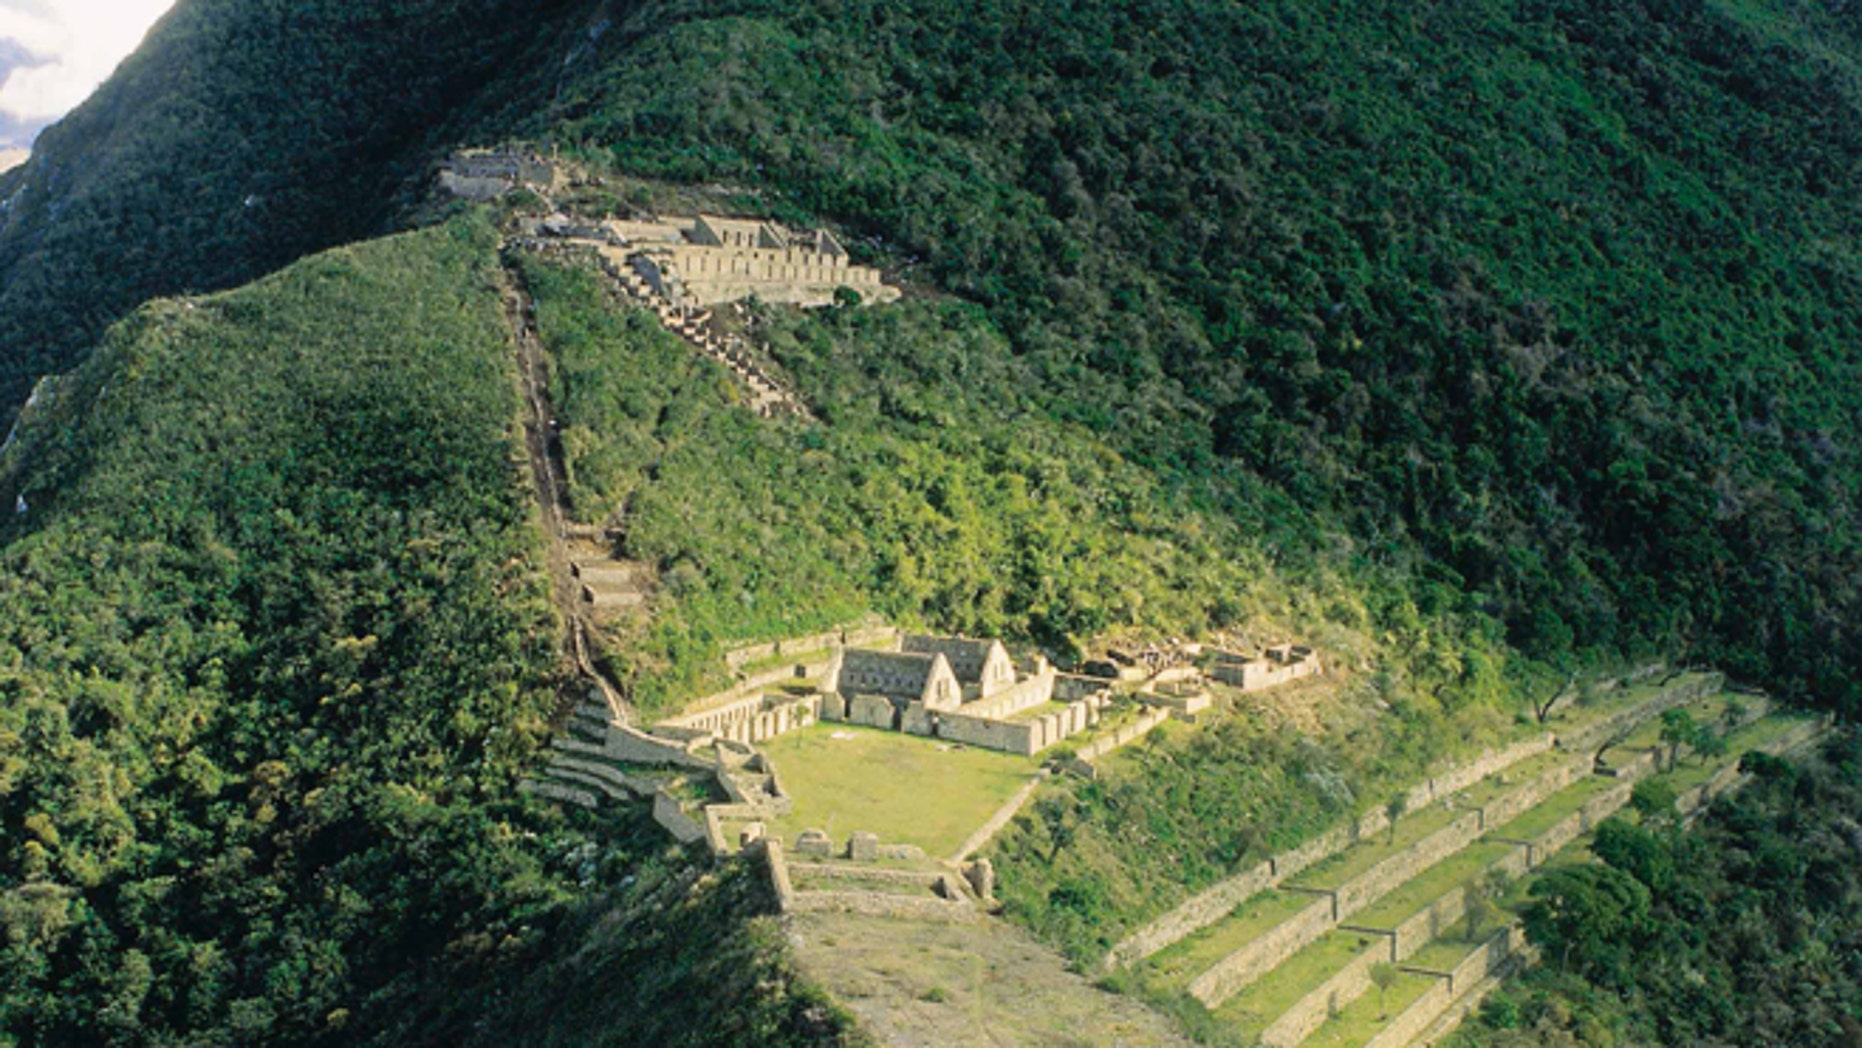 This Aug. 2004 photo provided by the Peru's government organization Promperu, shows the Choquequirao ruins in Cuzco, Peru. Peru's government has approved what will be Peruâs first aerial tramway, making Choquequirao reachable in just 15 minutes from the nearest highway. (AP Photo/Promperu)